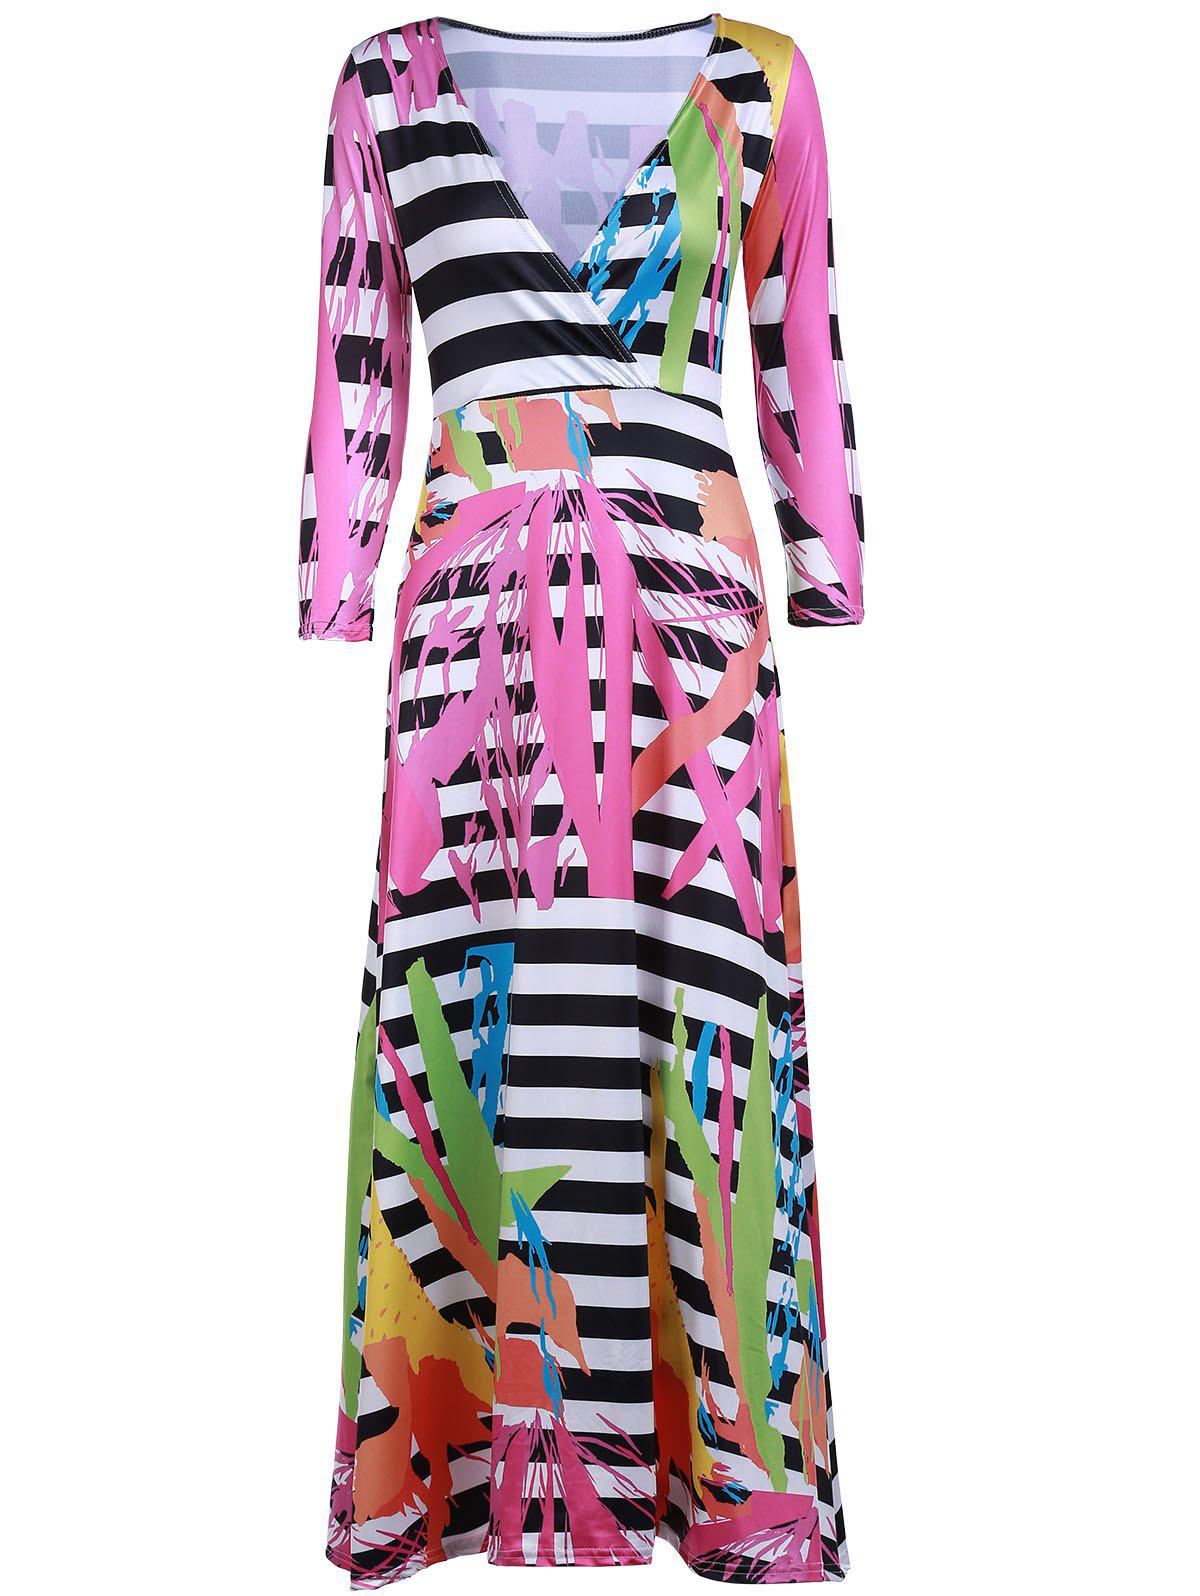 Sexy Women's Plunging Neck 3/4 Sleeve Printed Maxi Dress - ROSE S